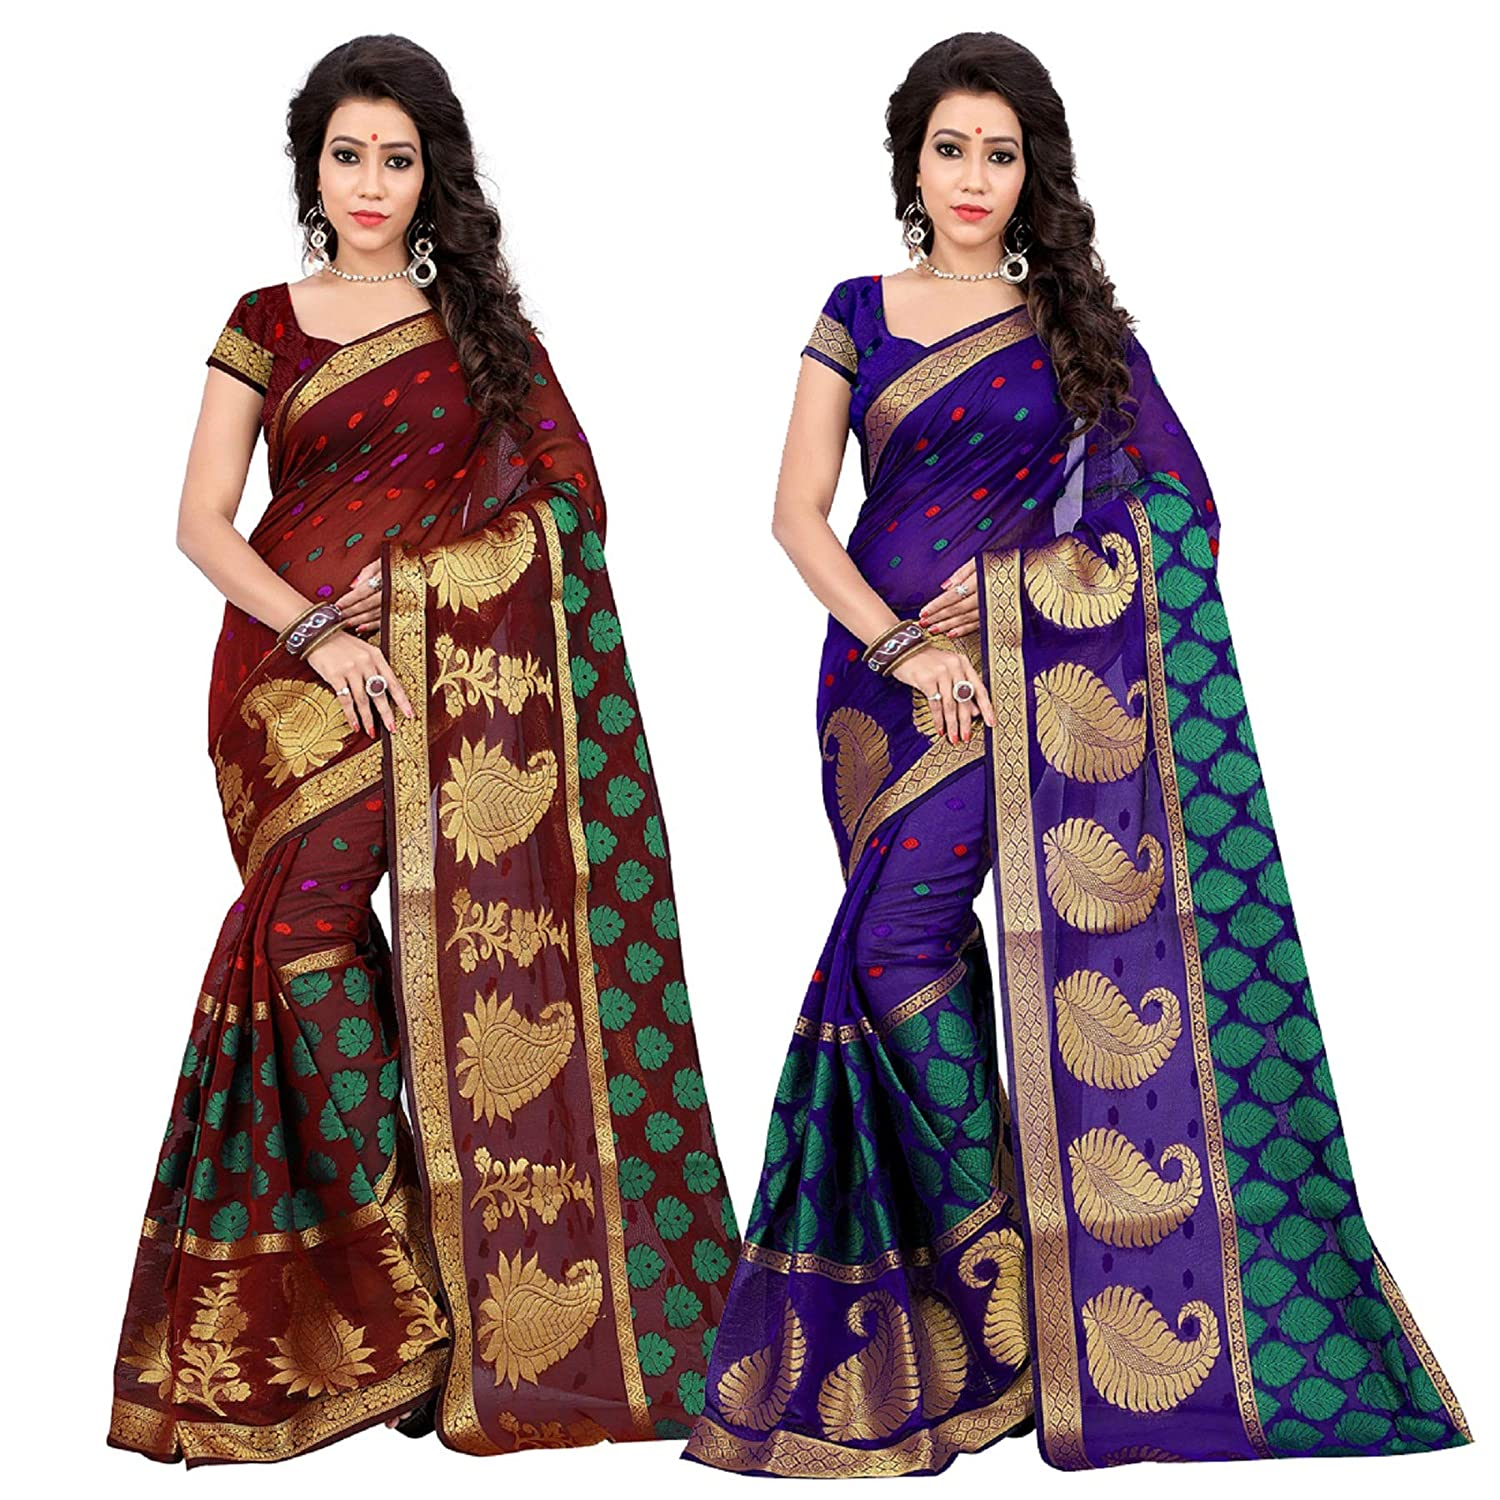 85ce8bc90a Jay Fashion women's self design emblished banarasi silk 2 pc combo saree  with plain blouse (maroon:purple): Amazon.in: Clothing & Accessories